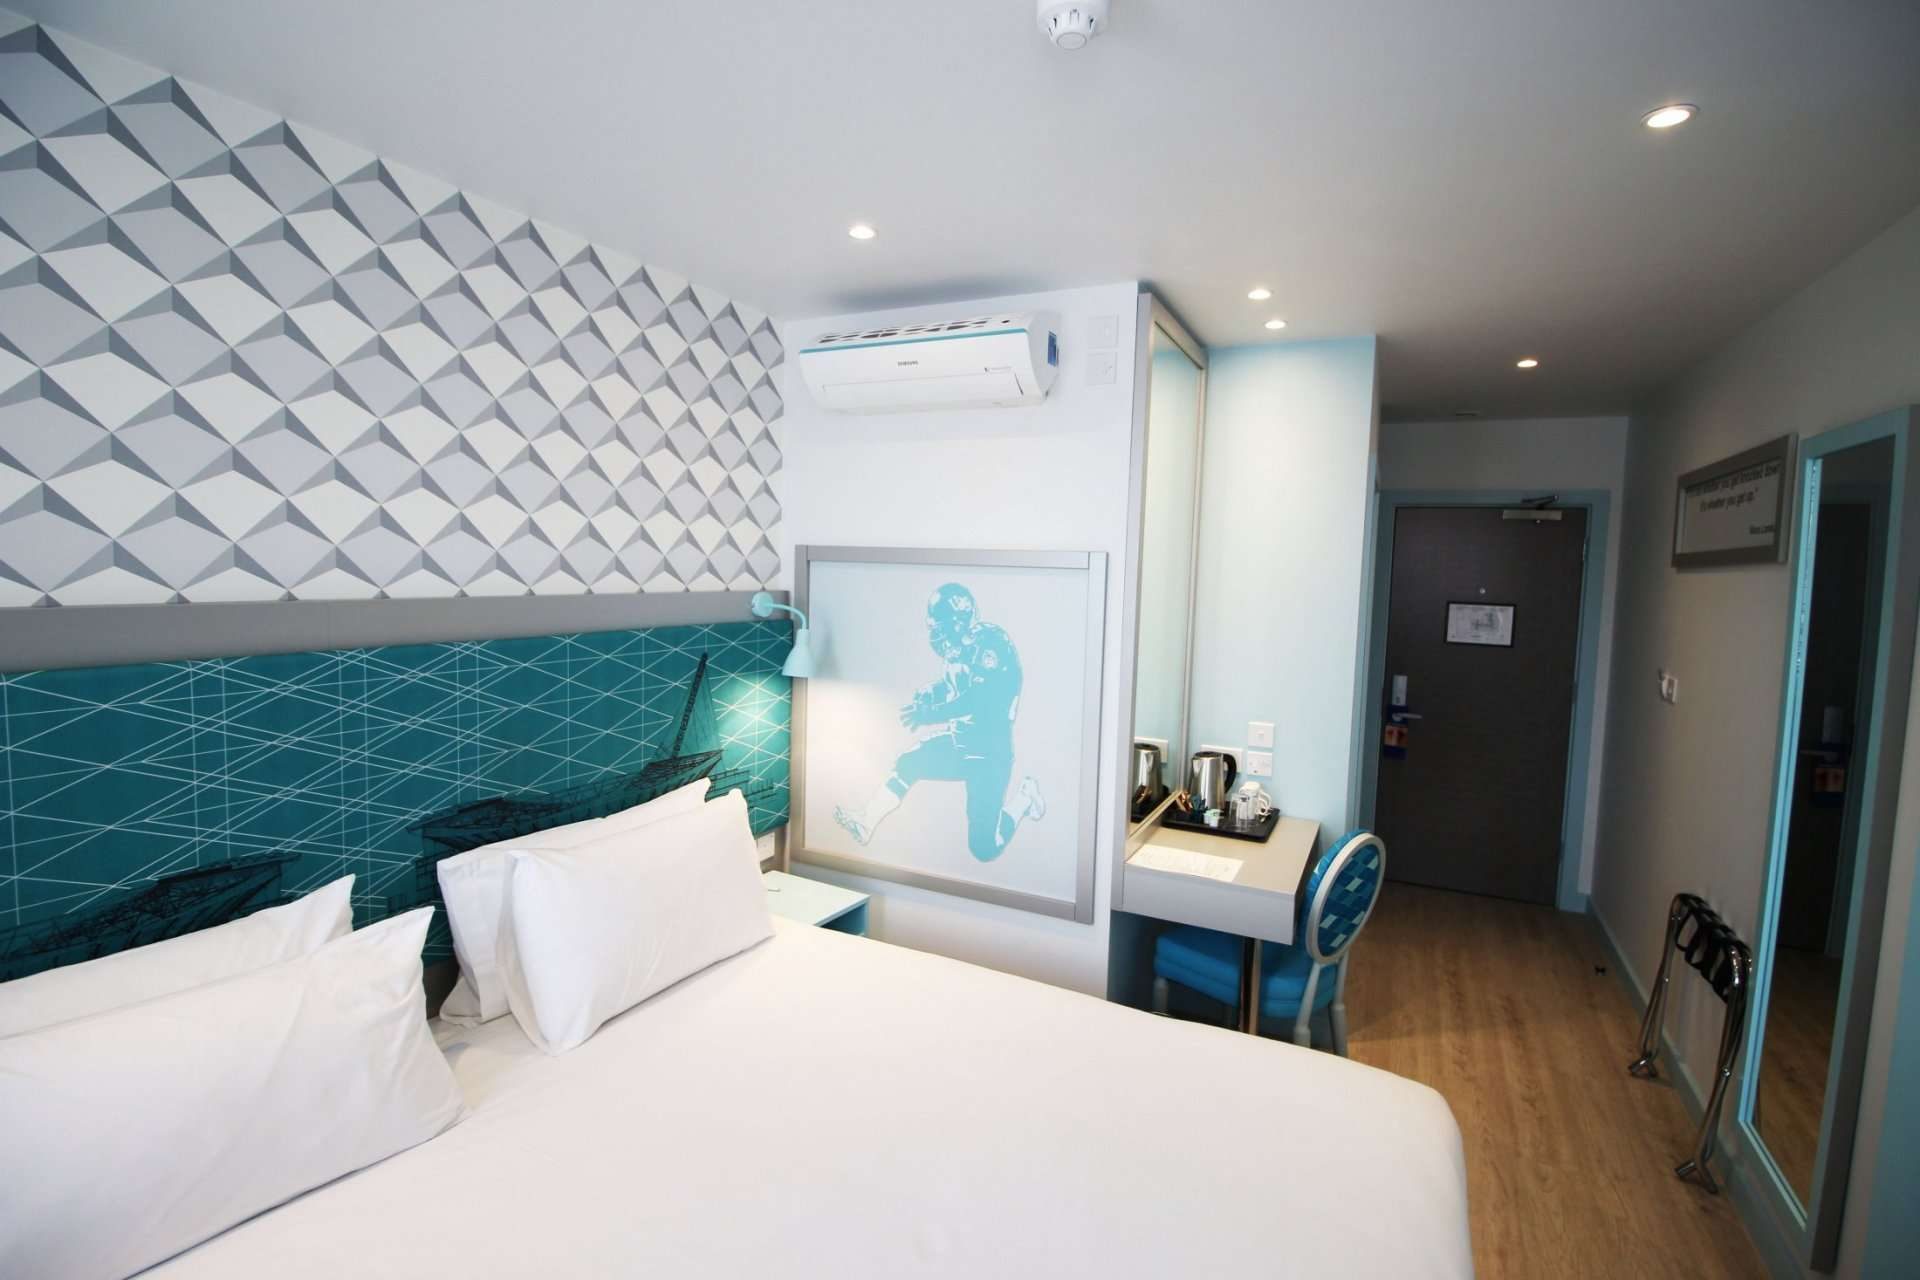 Double room at the Wembley Hotel from LHG